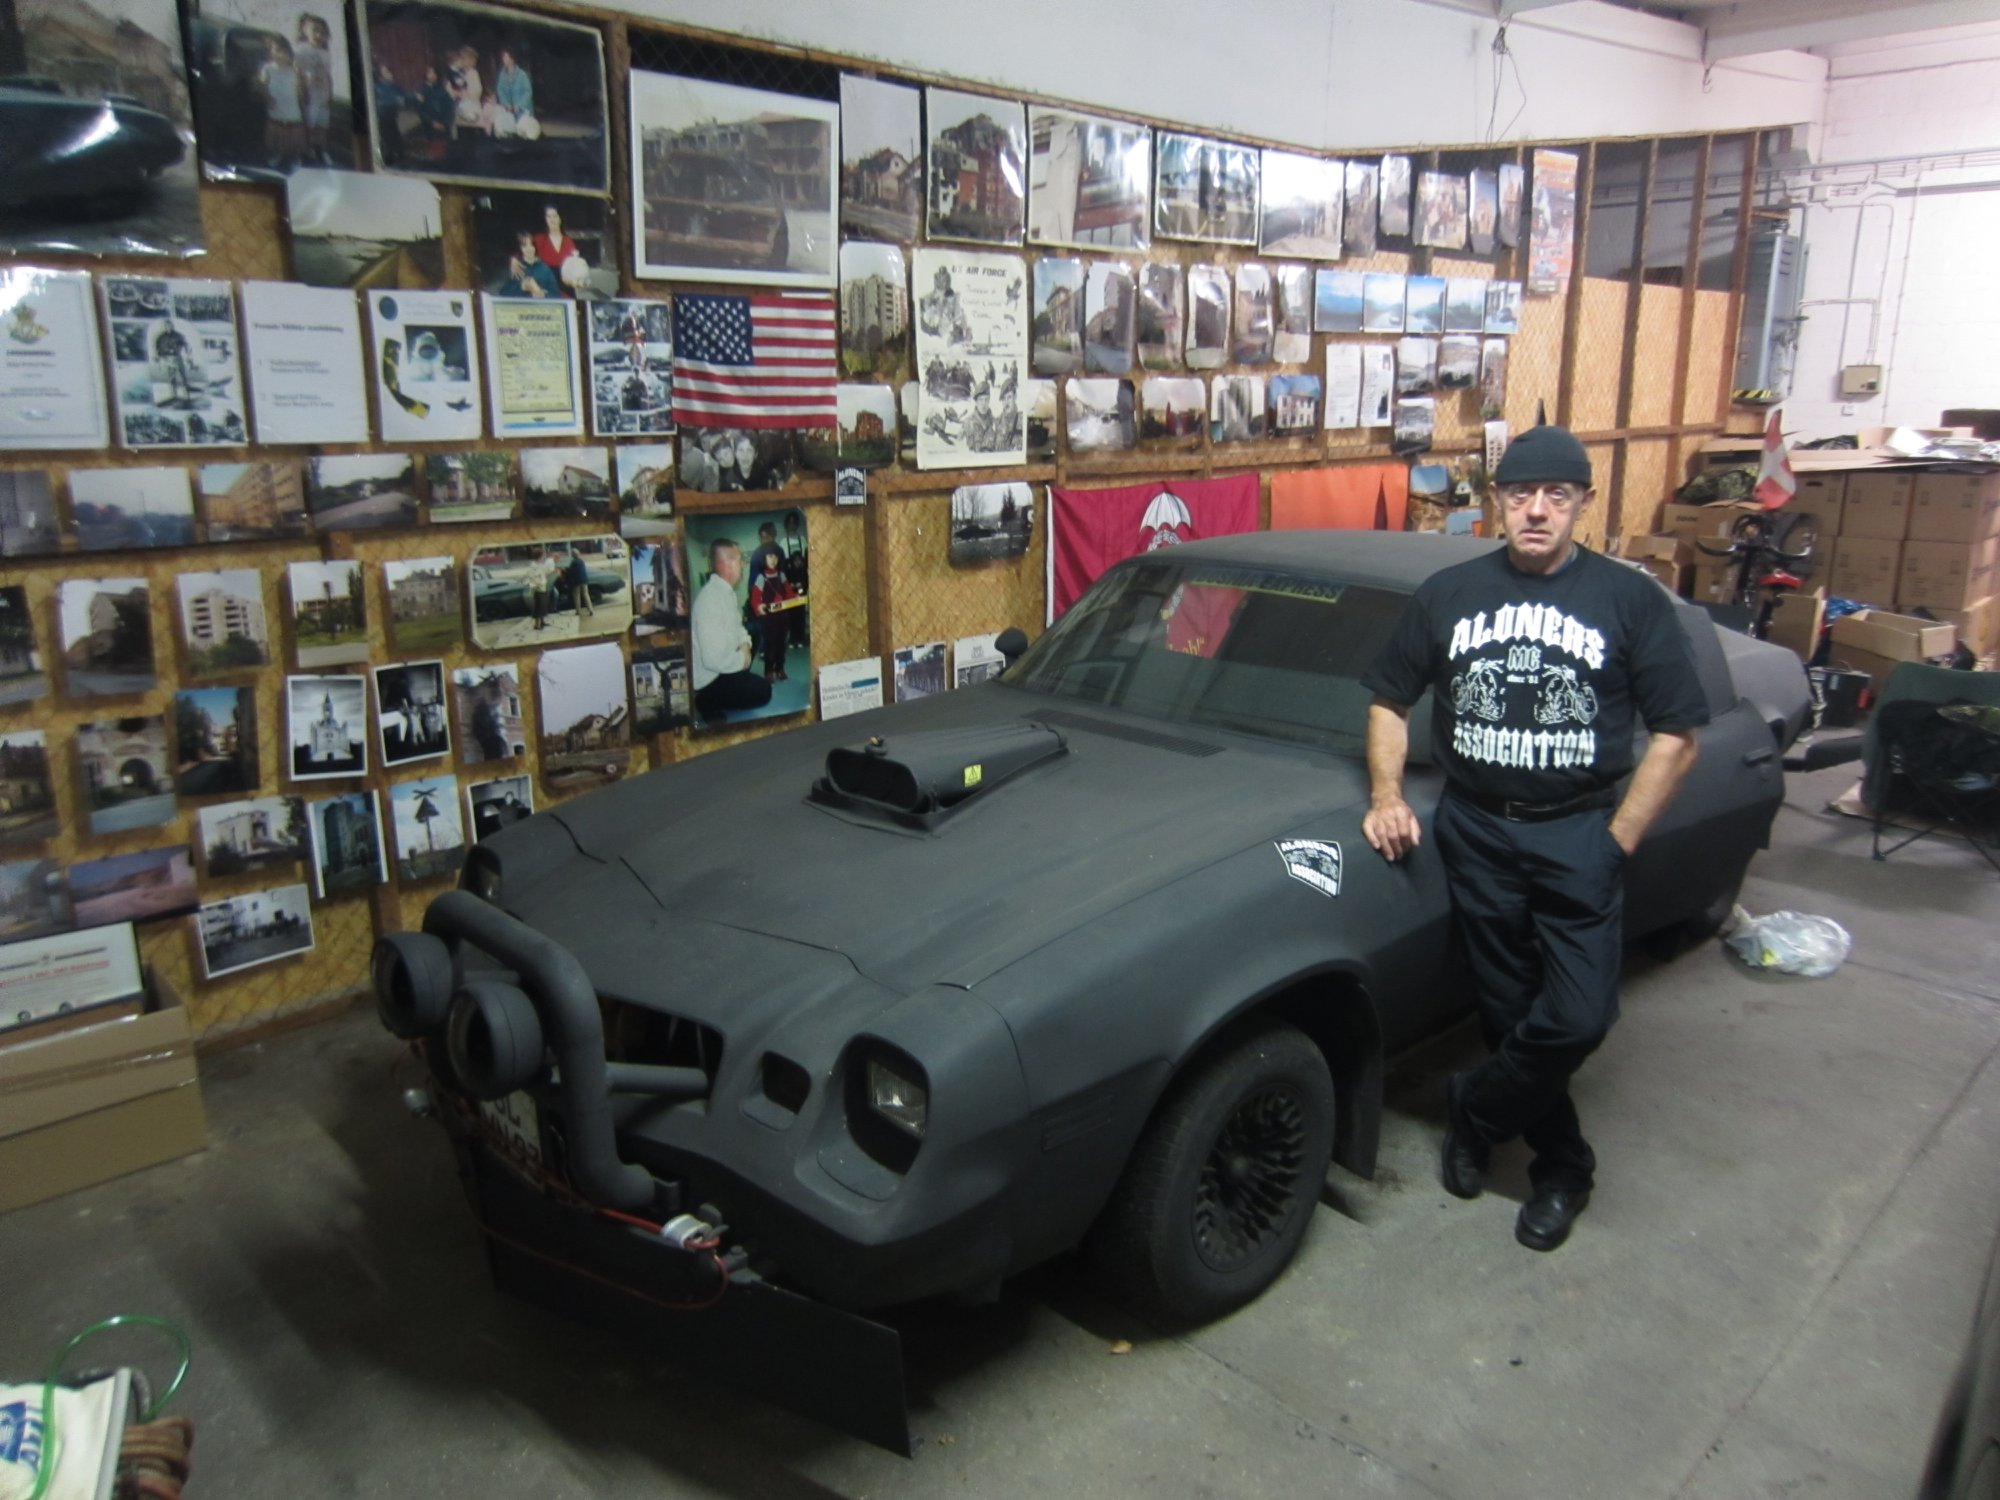 1979 Chevrolet War Camaro and owner